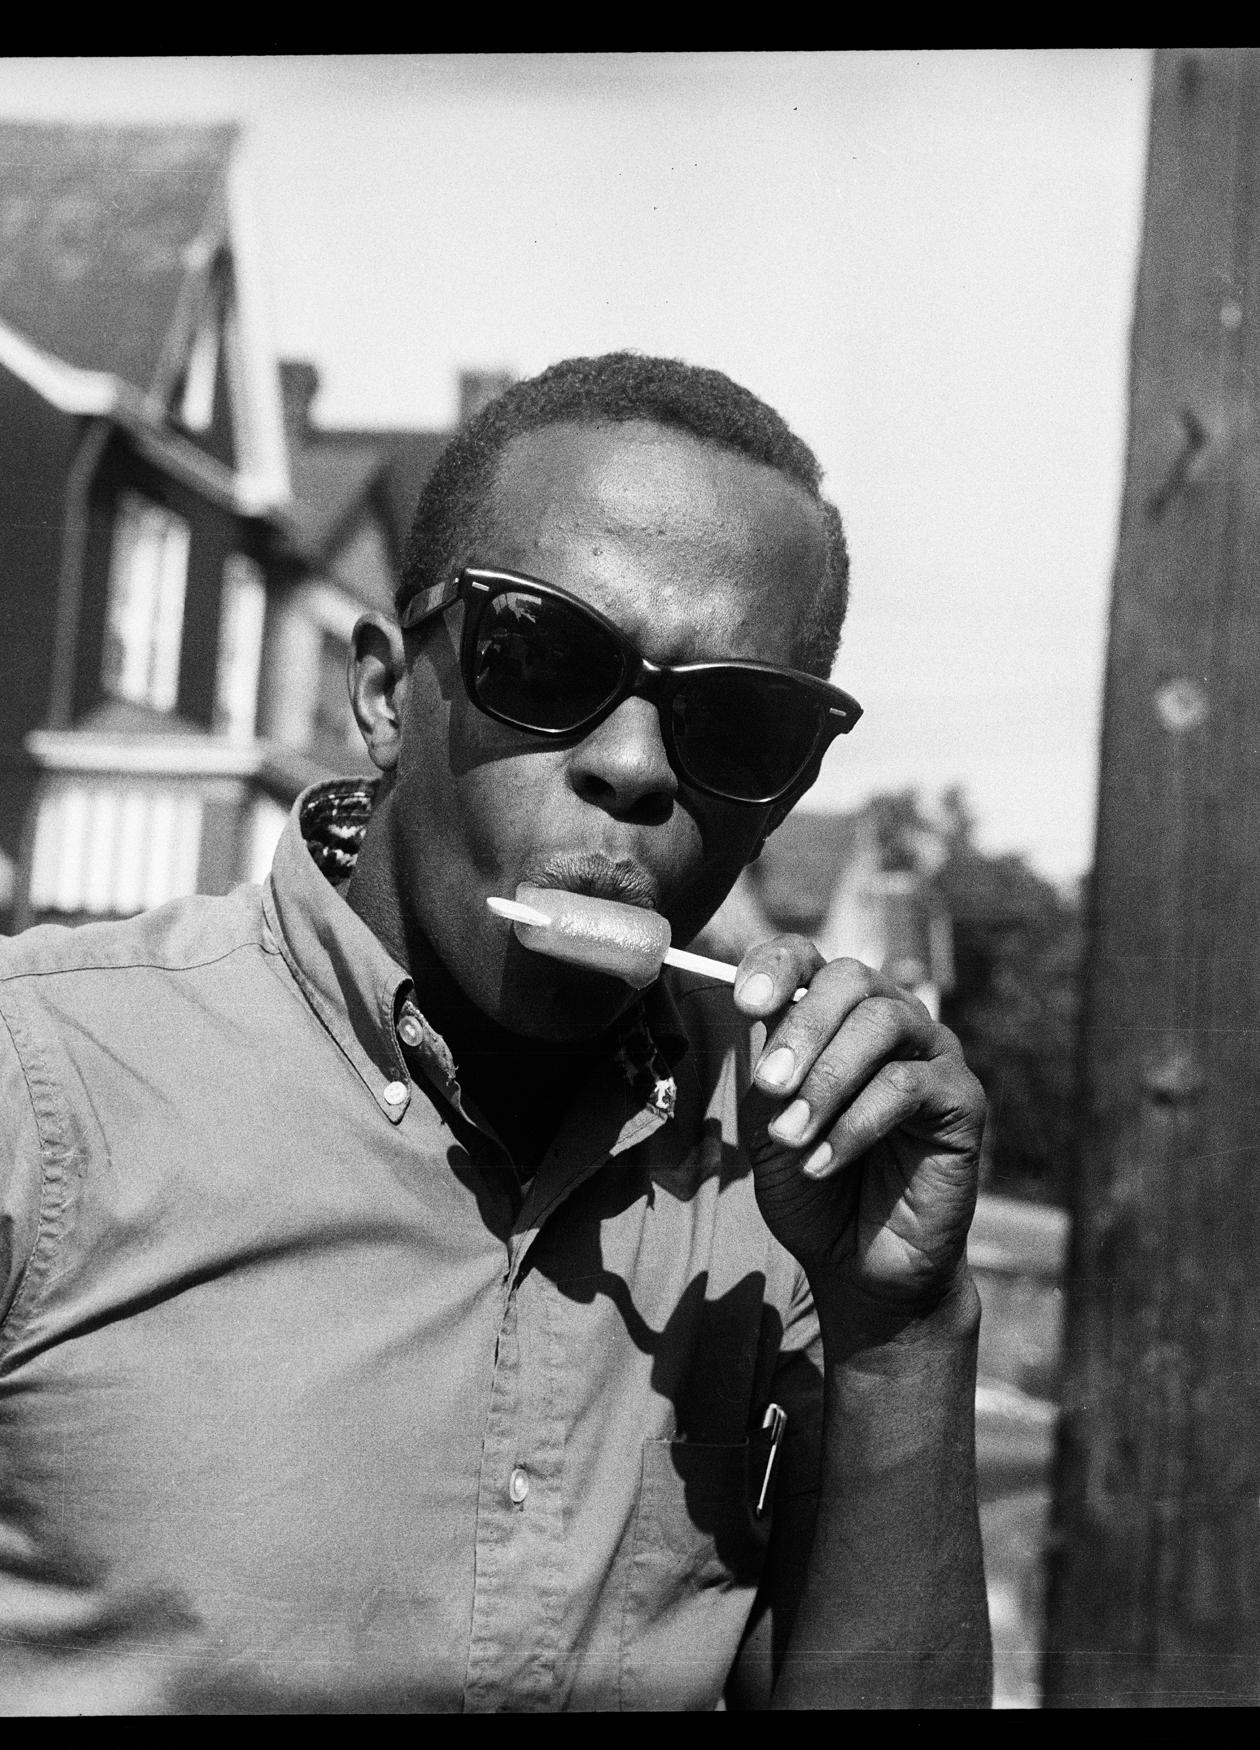 A young, African American man wearing sunglasses and eating a popsicle